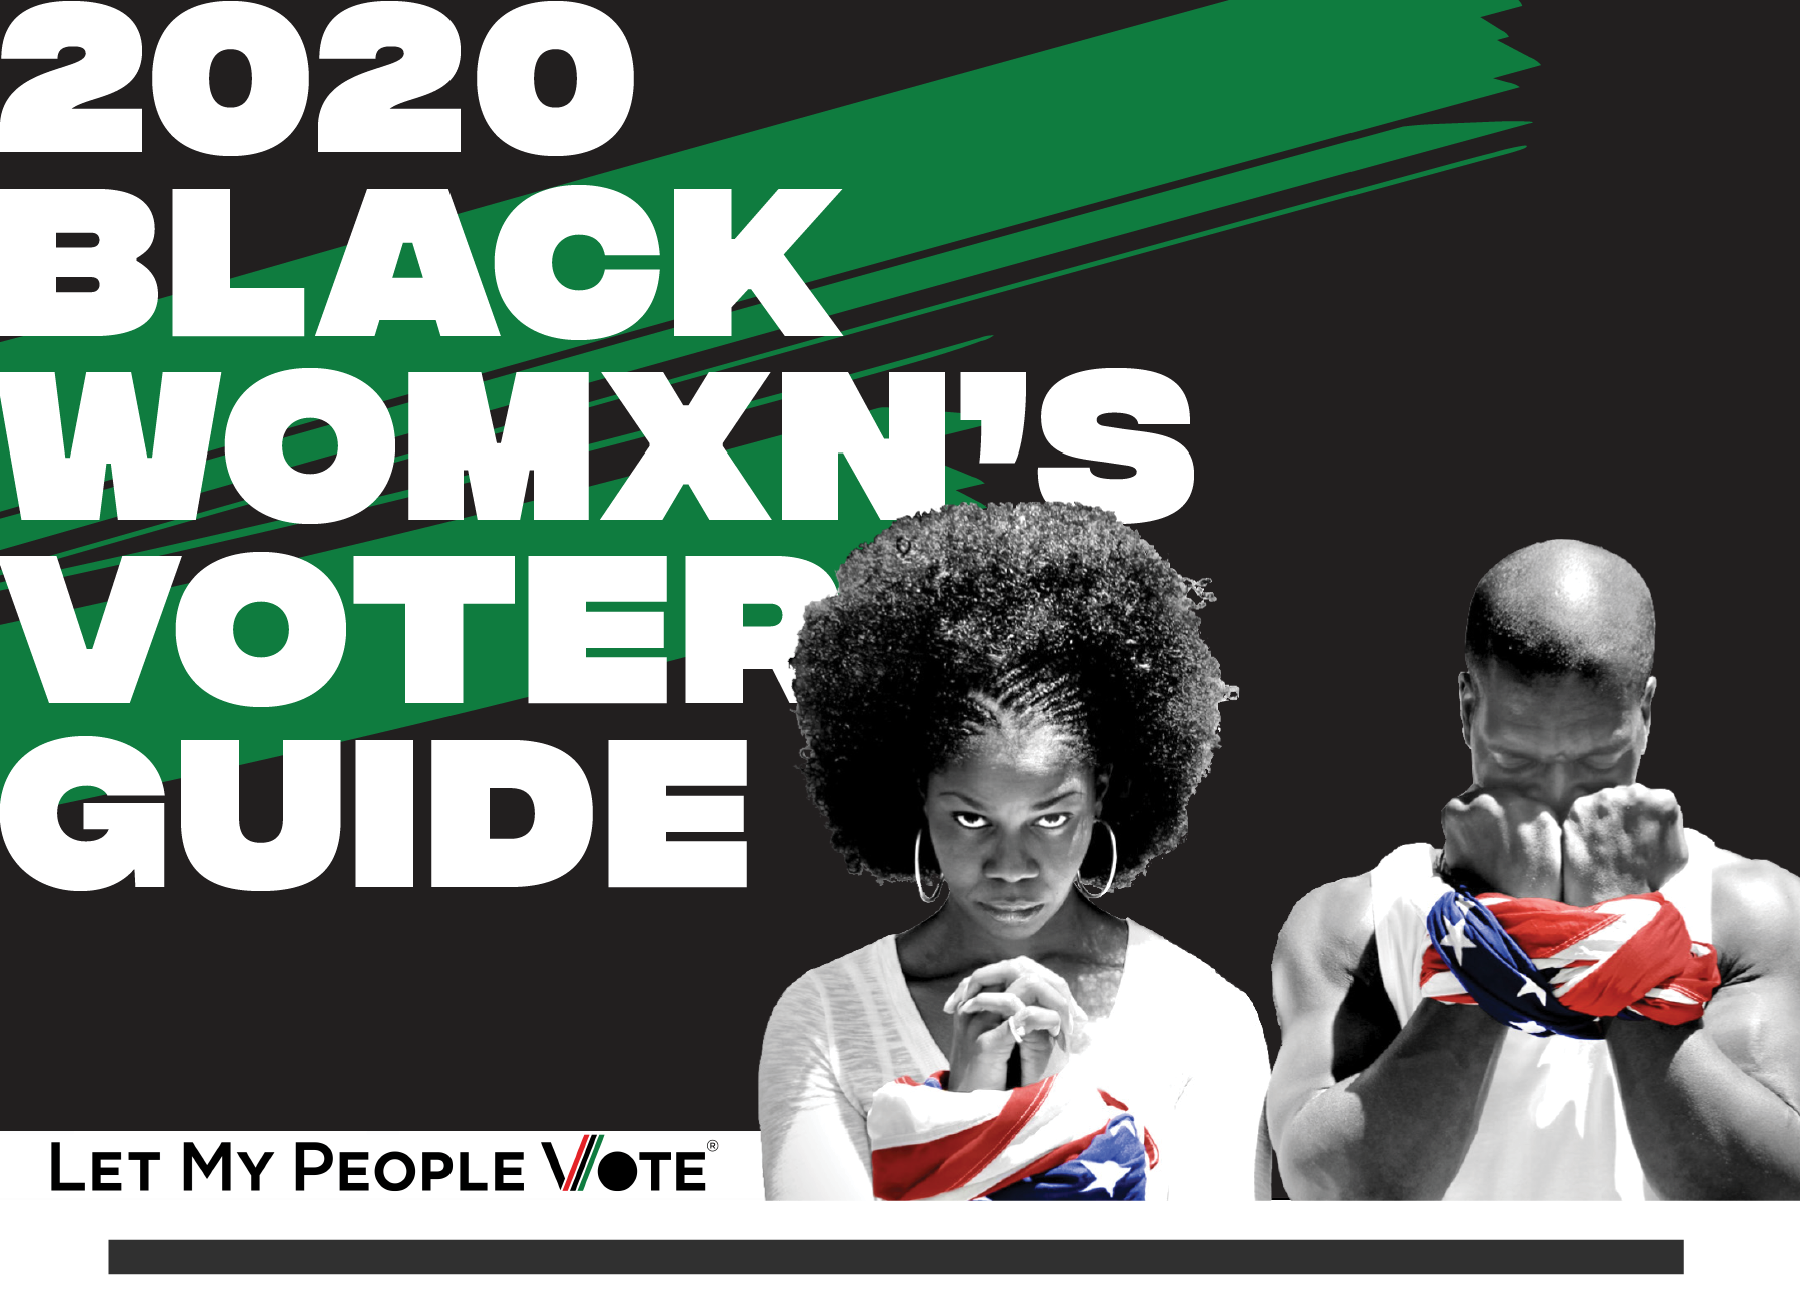 2020 Black Womxn's Voter Guide